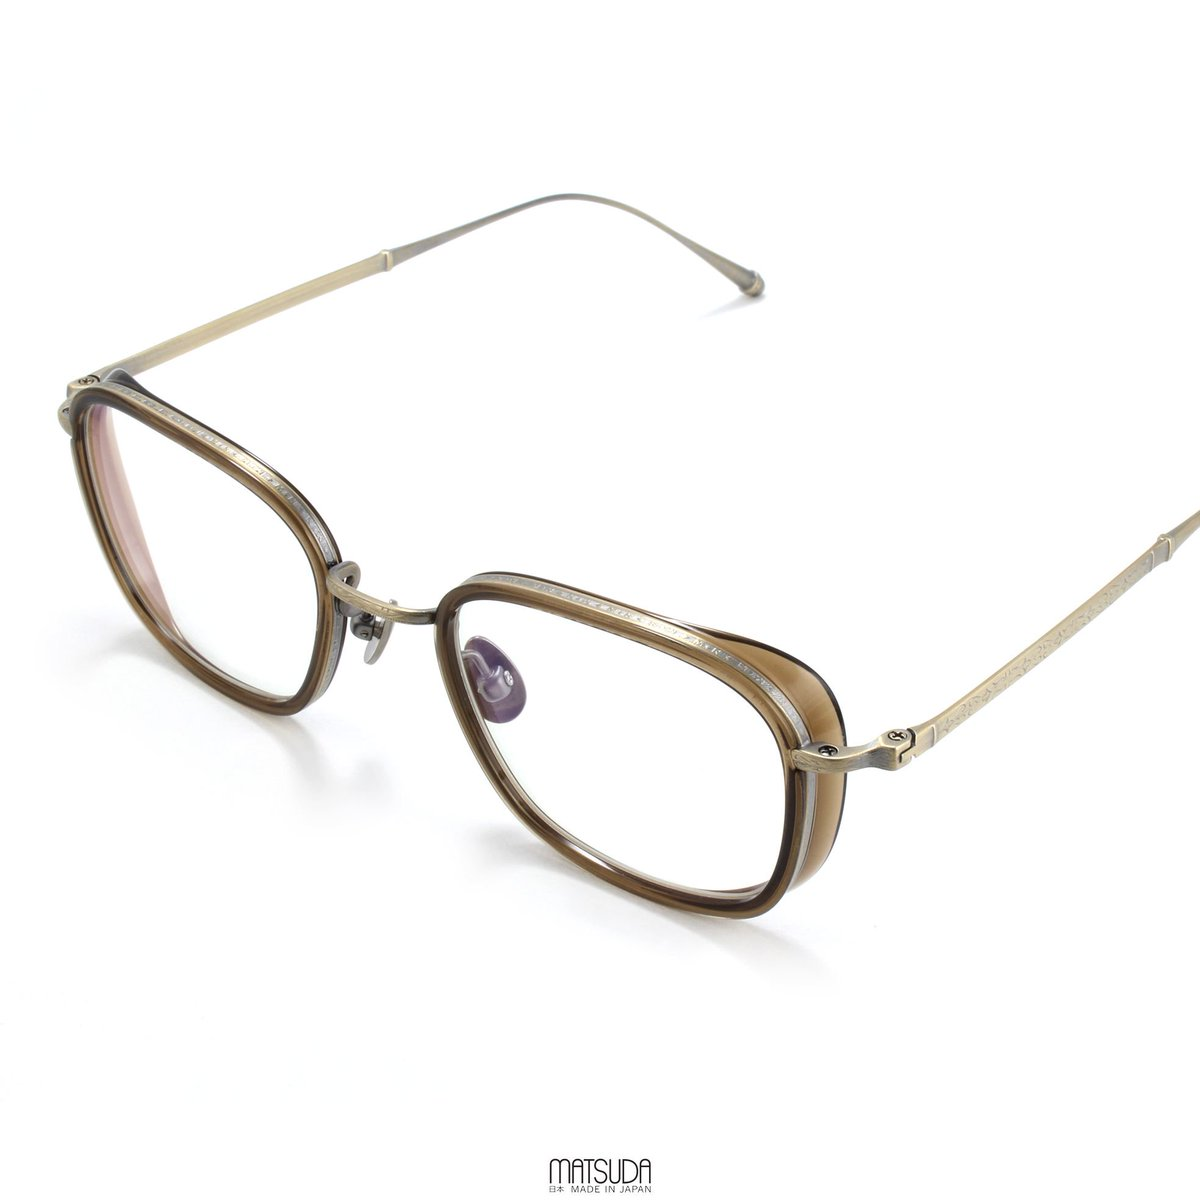 bff47092d789 The MATSUDA EYEWEAR    M3075 offers a classic rectangular style with  Japanese acetate side-shields and hand-engraved titanium nose-bridge and  temples.